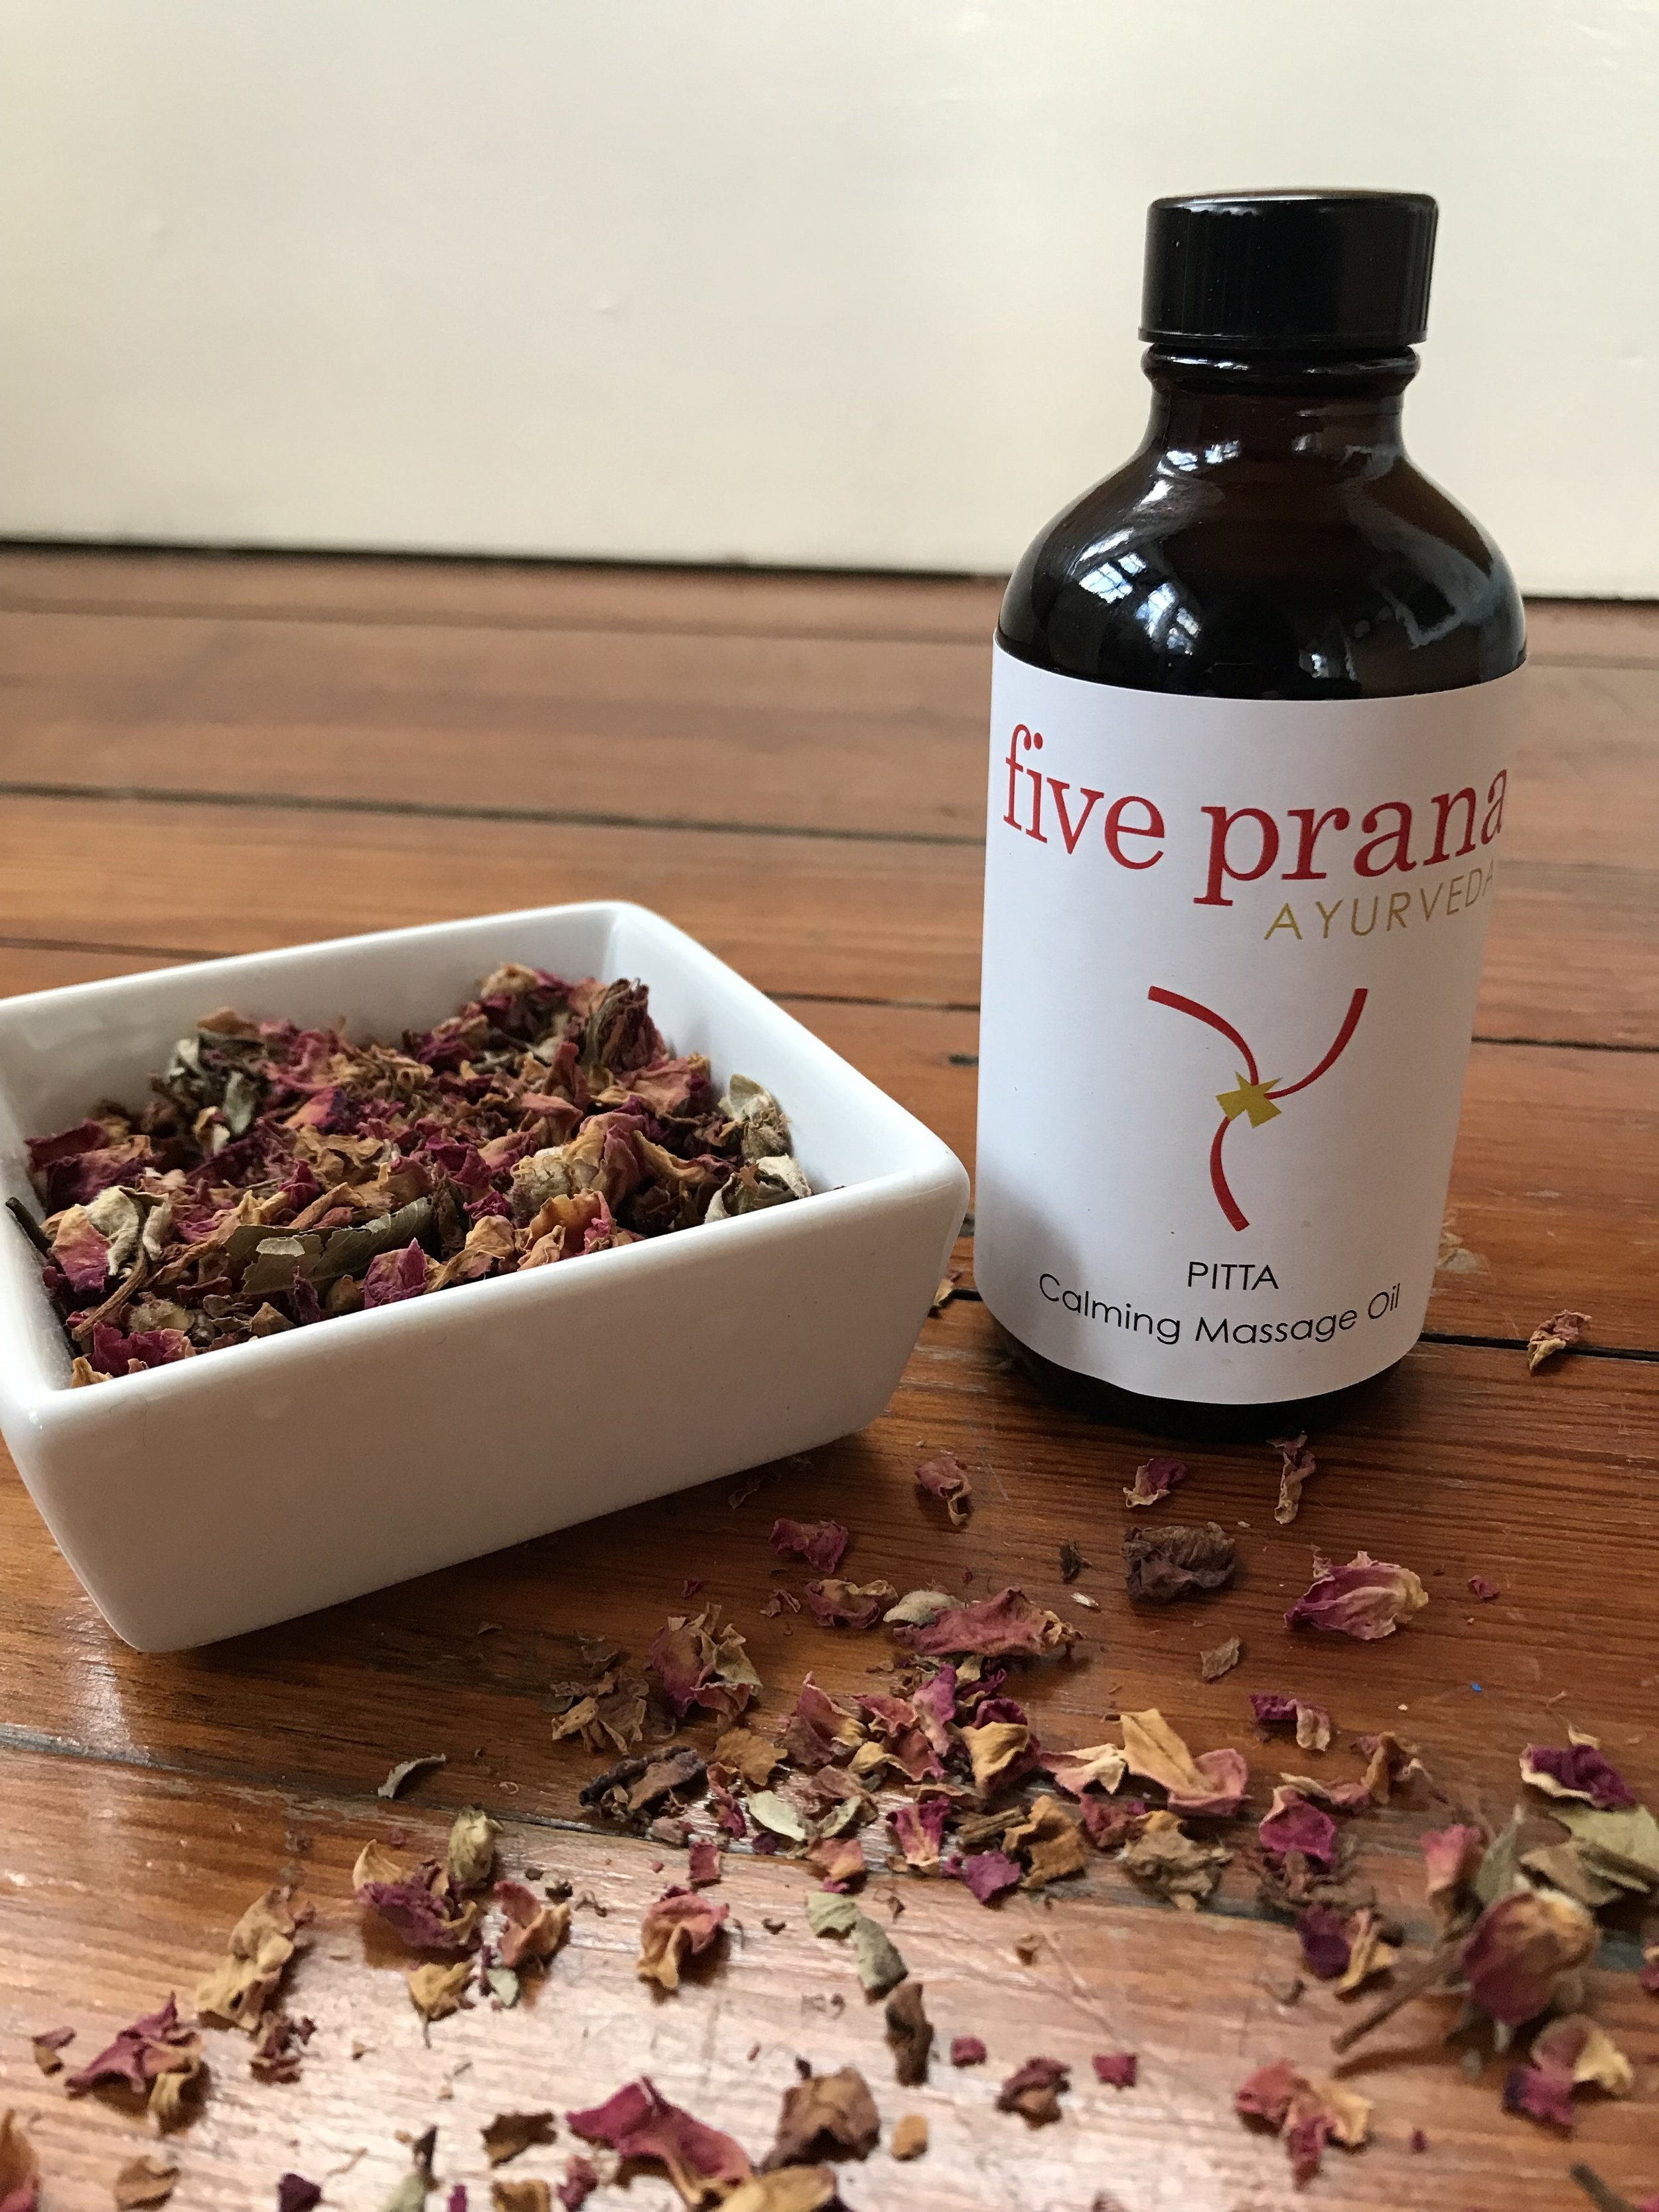 Five-Prana-Ayurvedic-Skin-Care-Product_Pitta-Ayurvedic-Massage-Oil-4.JPG